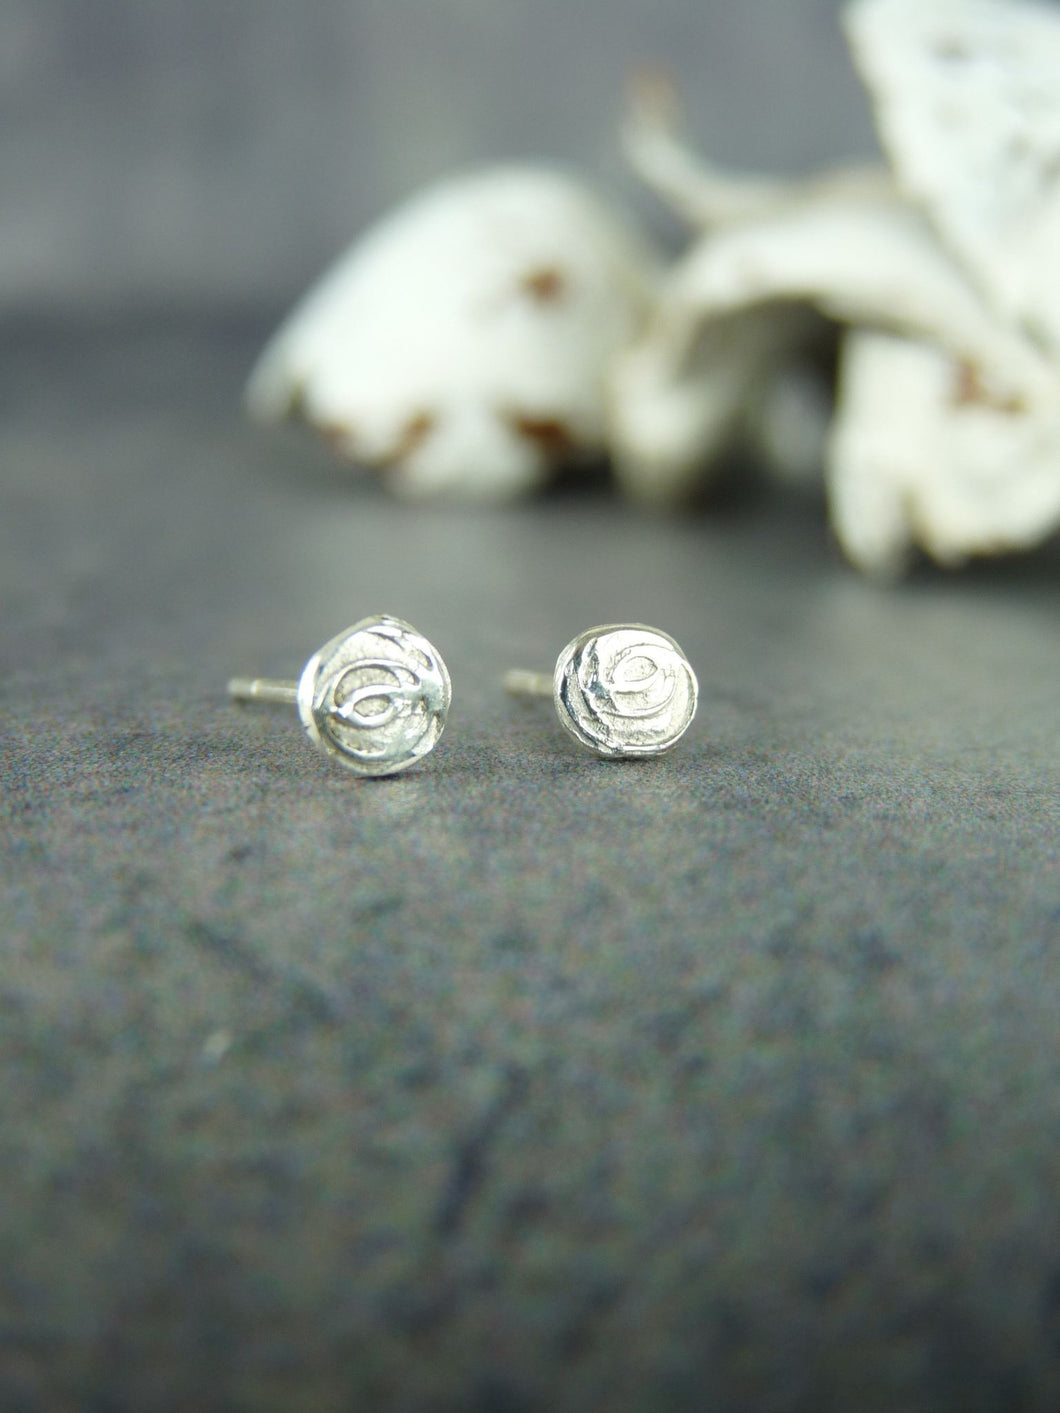 Rose stud earrings - Arborea Jewellery